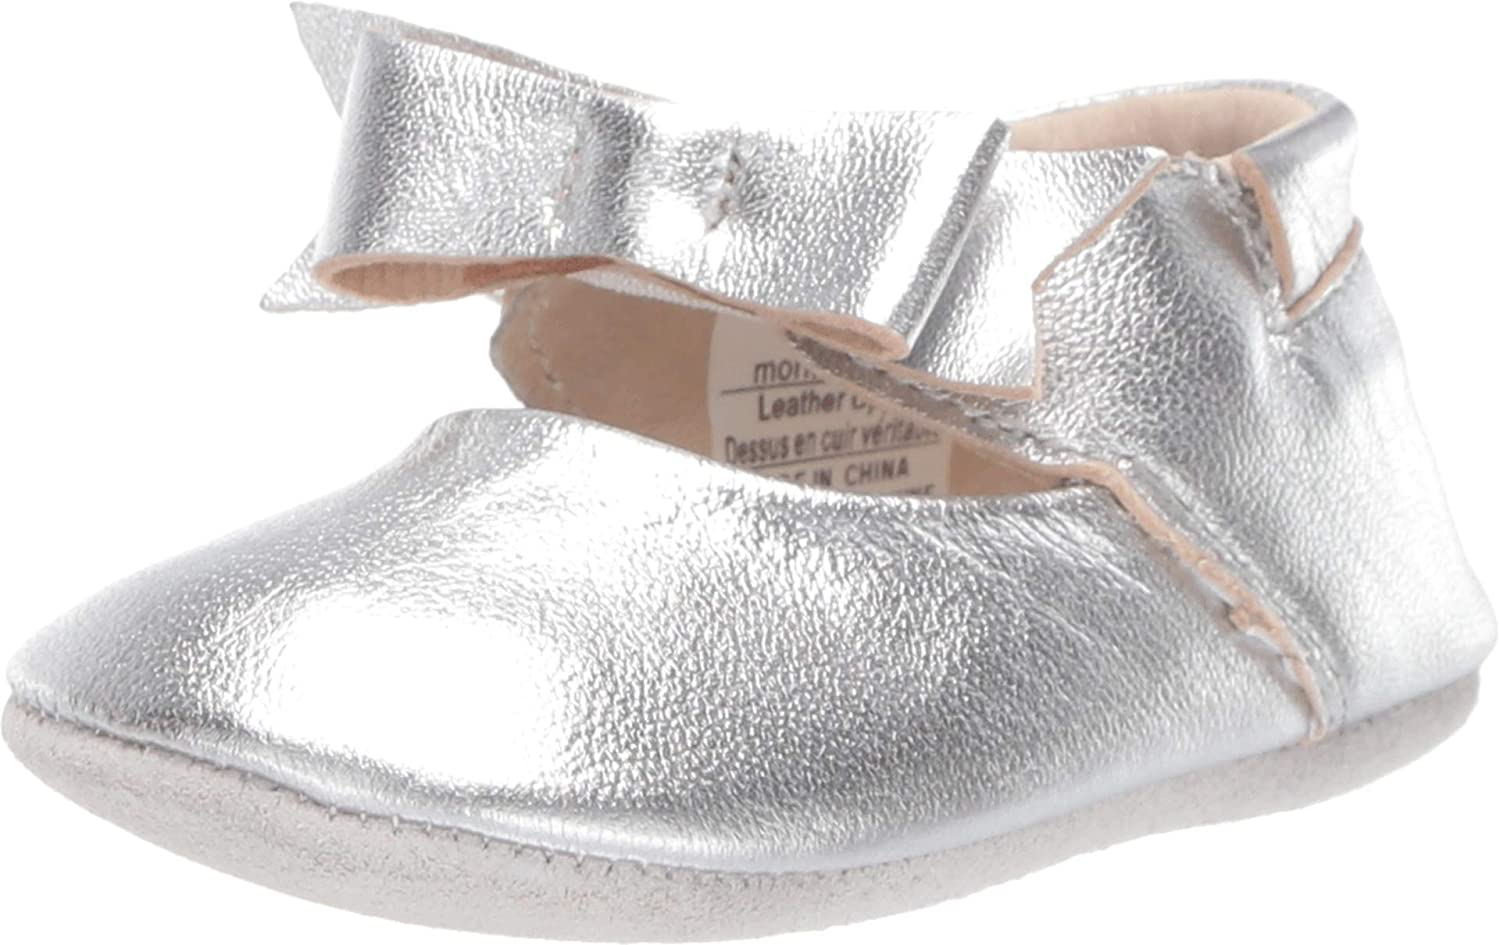 Boston Mall Robeez First Kick Shoes Girls Sacramento Mall Baby for